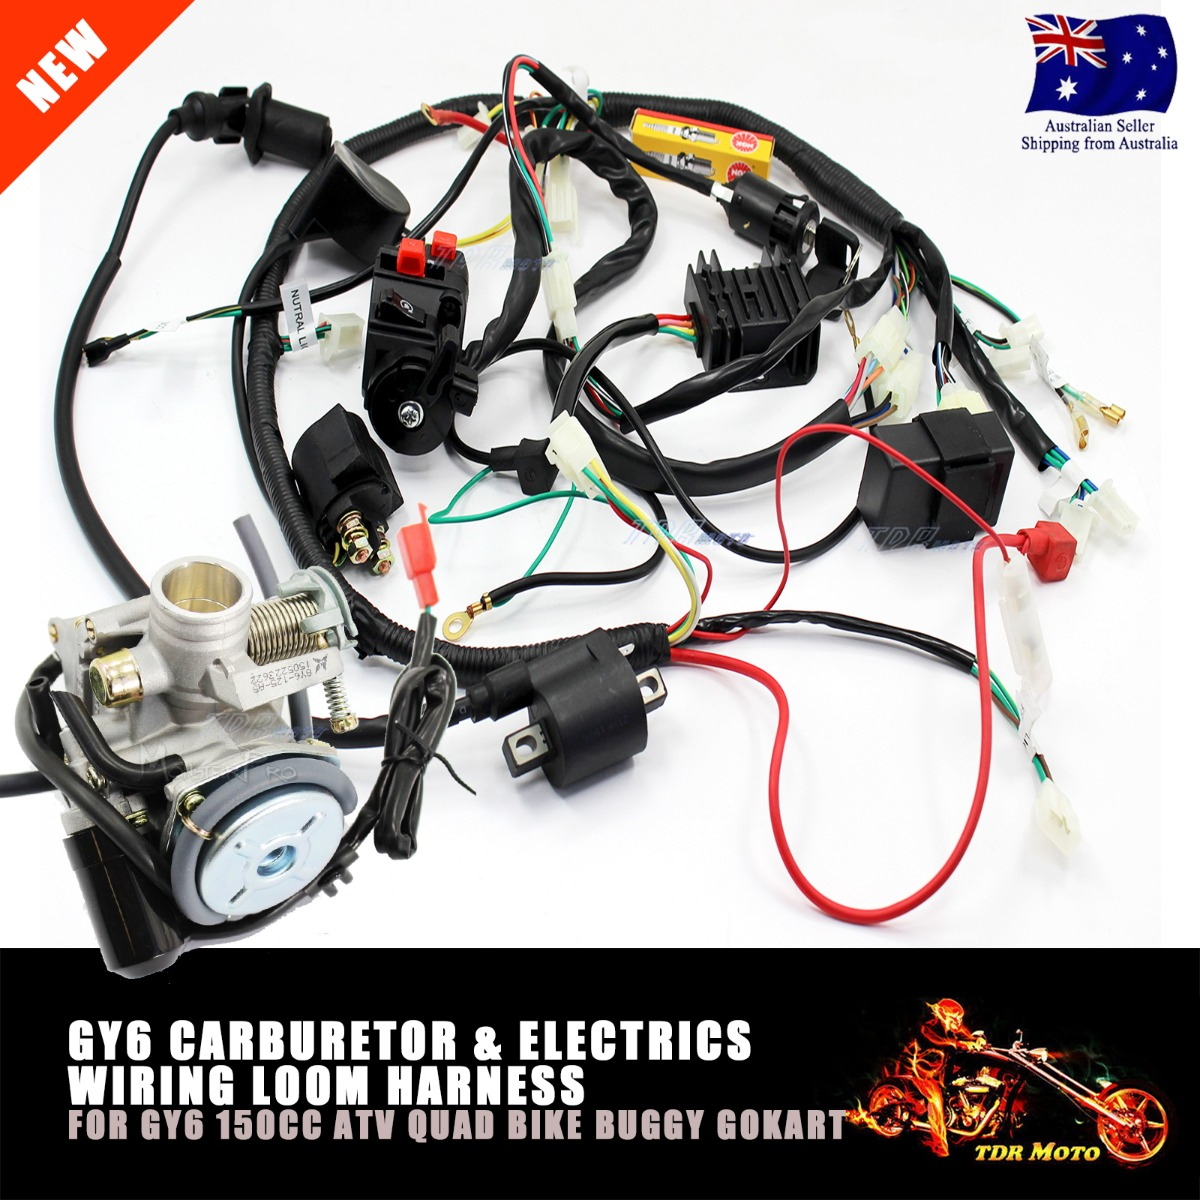 atv wiring kit arctic cat atv wiring diagram arctic cat atv wiring on buggy wagon, buggy engine, buggy bed, buggy carriage,